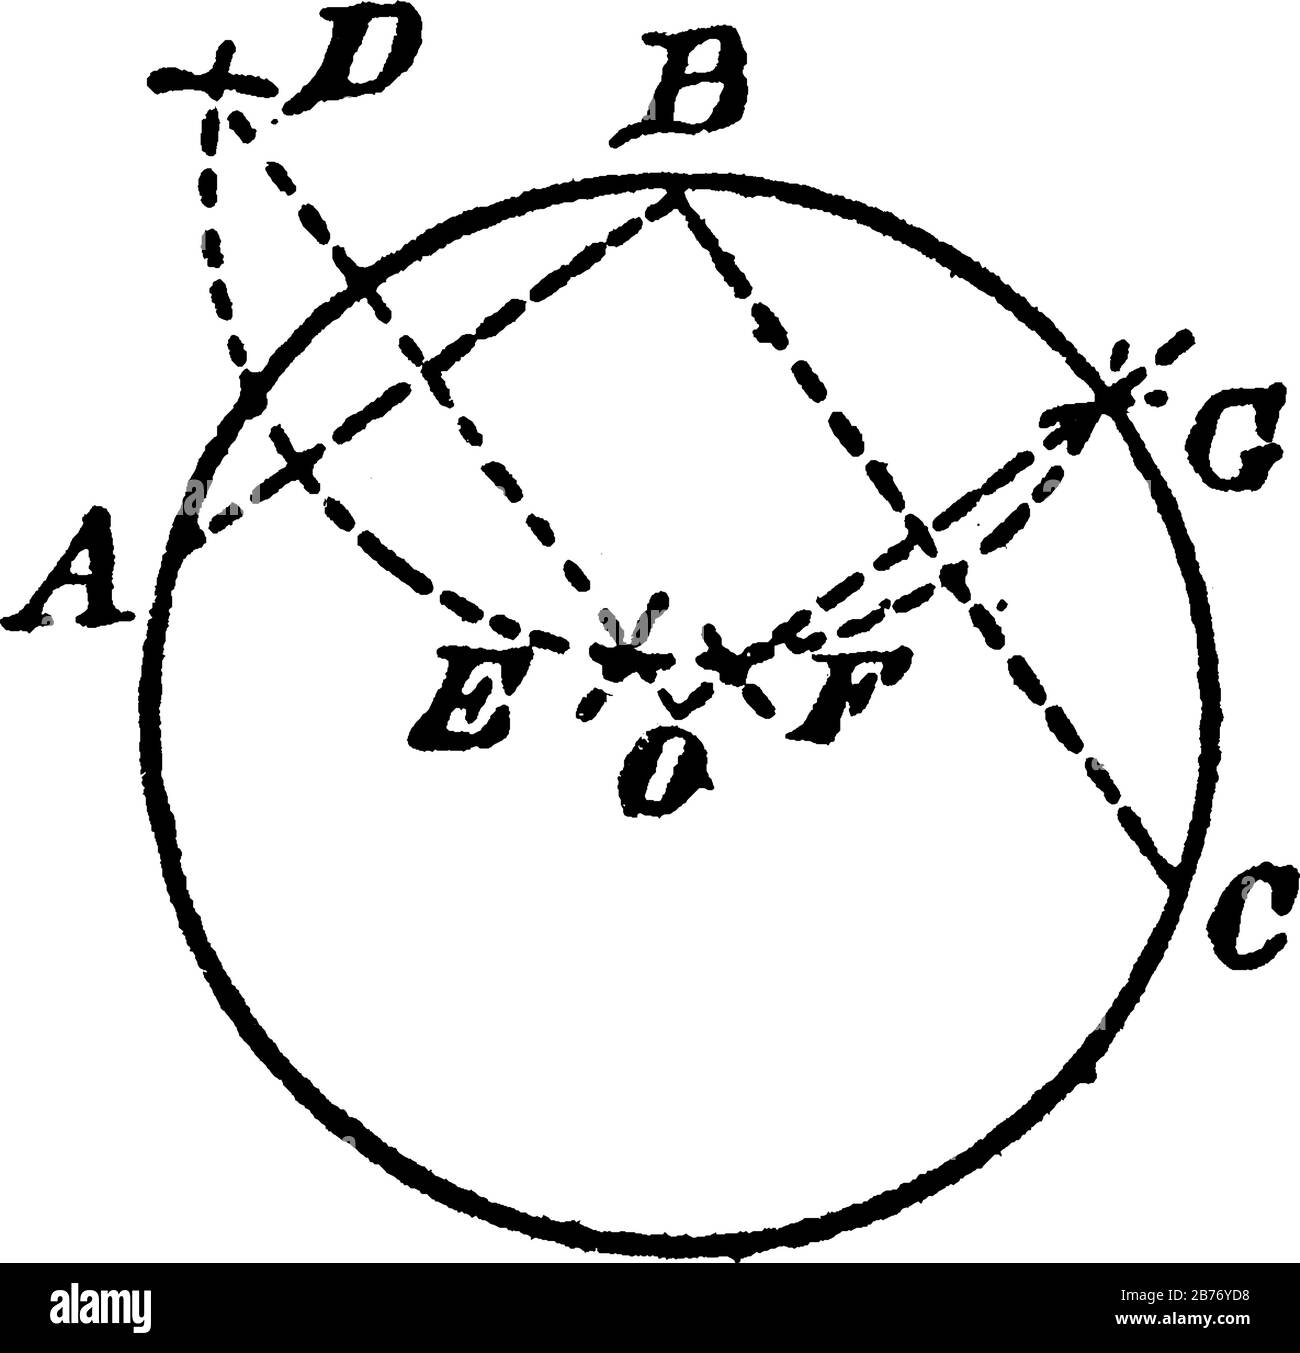 An Illustration Showing How To Find The Center Of A Circle Which Will Pass Through Given